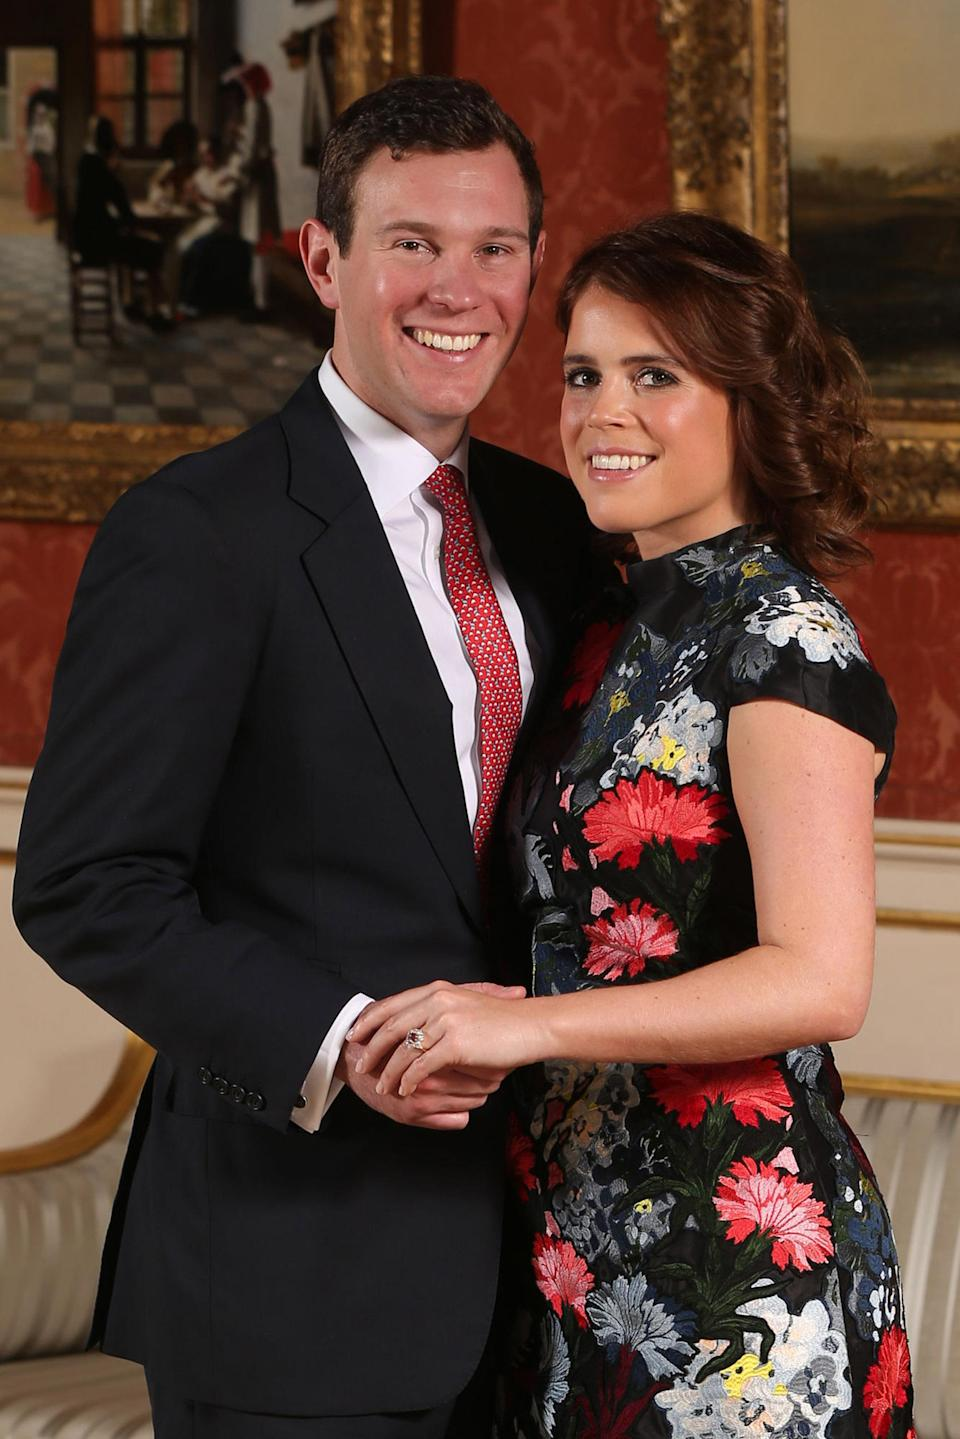 Princess Eugenie and Jack Brooksbank announced their engagement on January 22 [Photo: Getty]